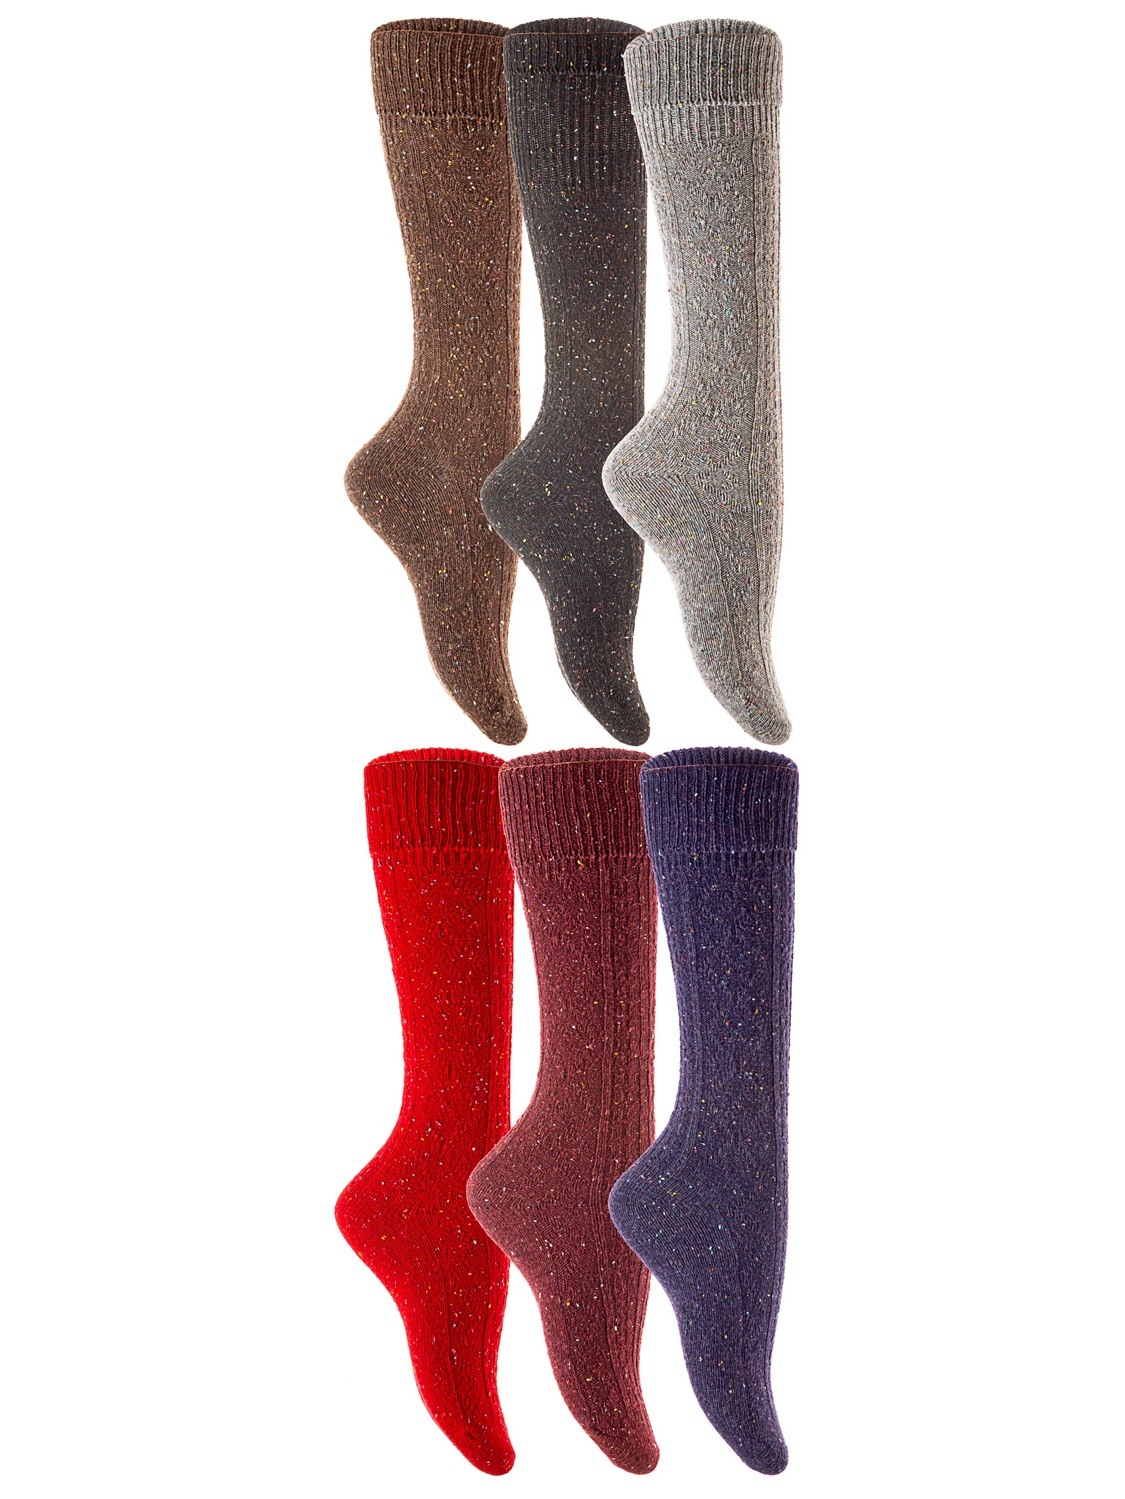 5 Pair Pack with Stay On Technology STAY UP Boys Knee High School Socks